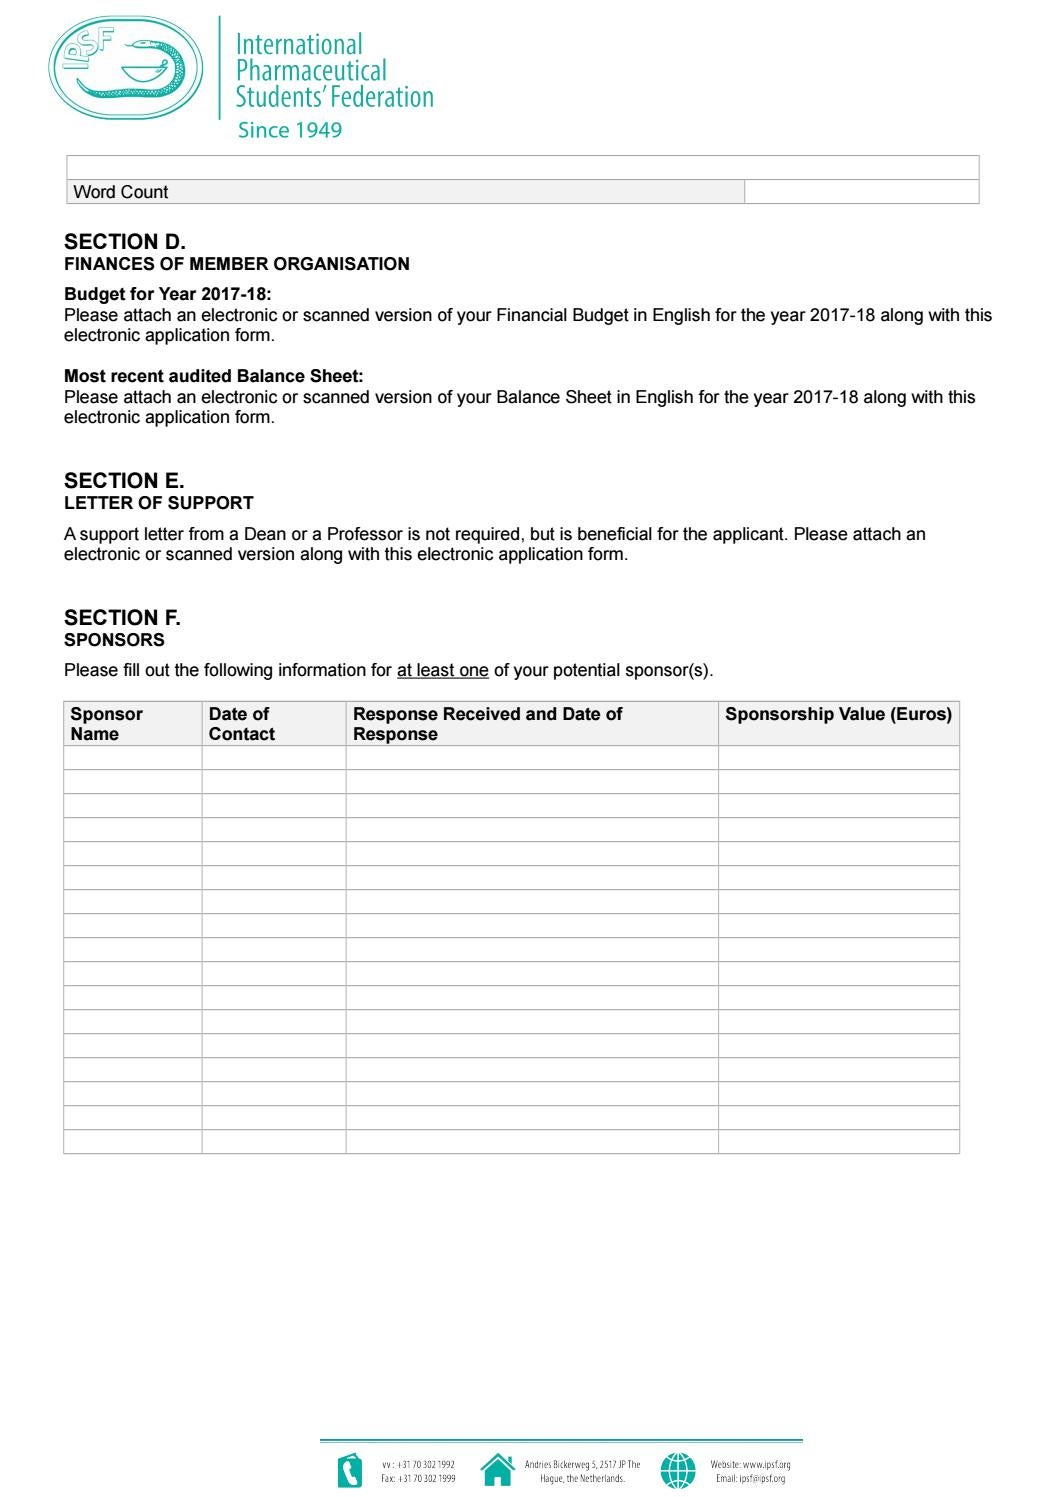 Ipsf membership grant application 2017 2018 by International ... on electronic education, email form, statement of purpose form, electronic brochure, electronic programs, ssa disability form, electronic information, chase savings account form, electronic data capture system, electronic resume, electronic payment, electronic courses, electronic notification, electronic newsletter, electronic contacts, x-ray order form,